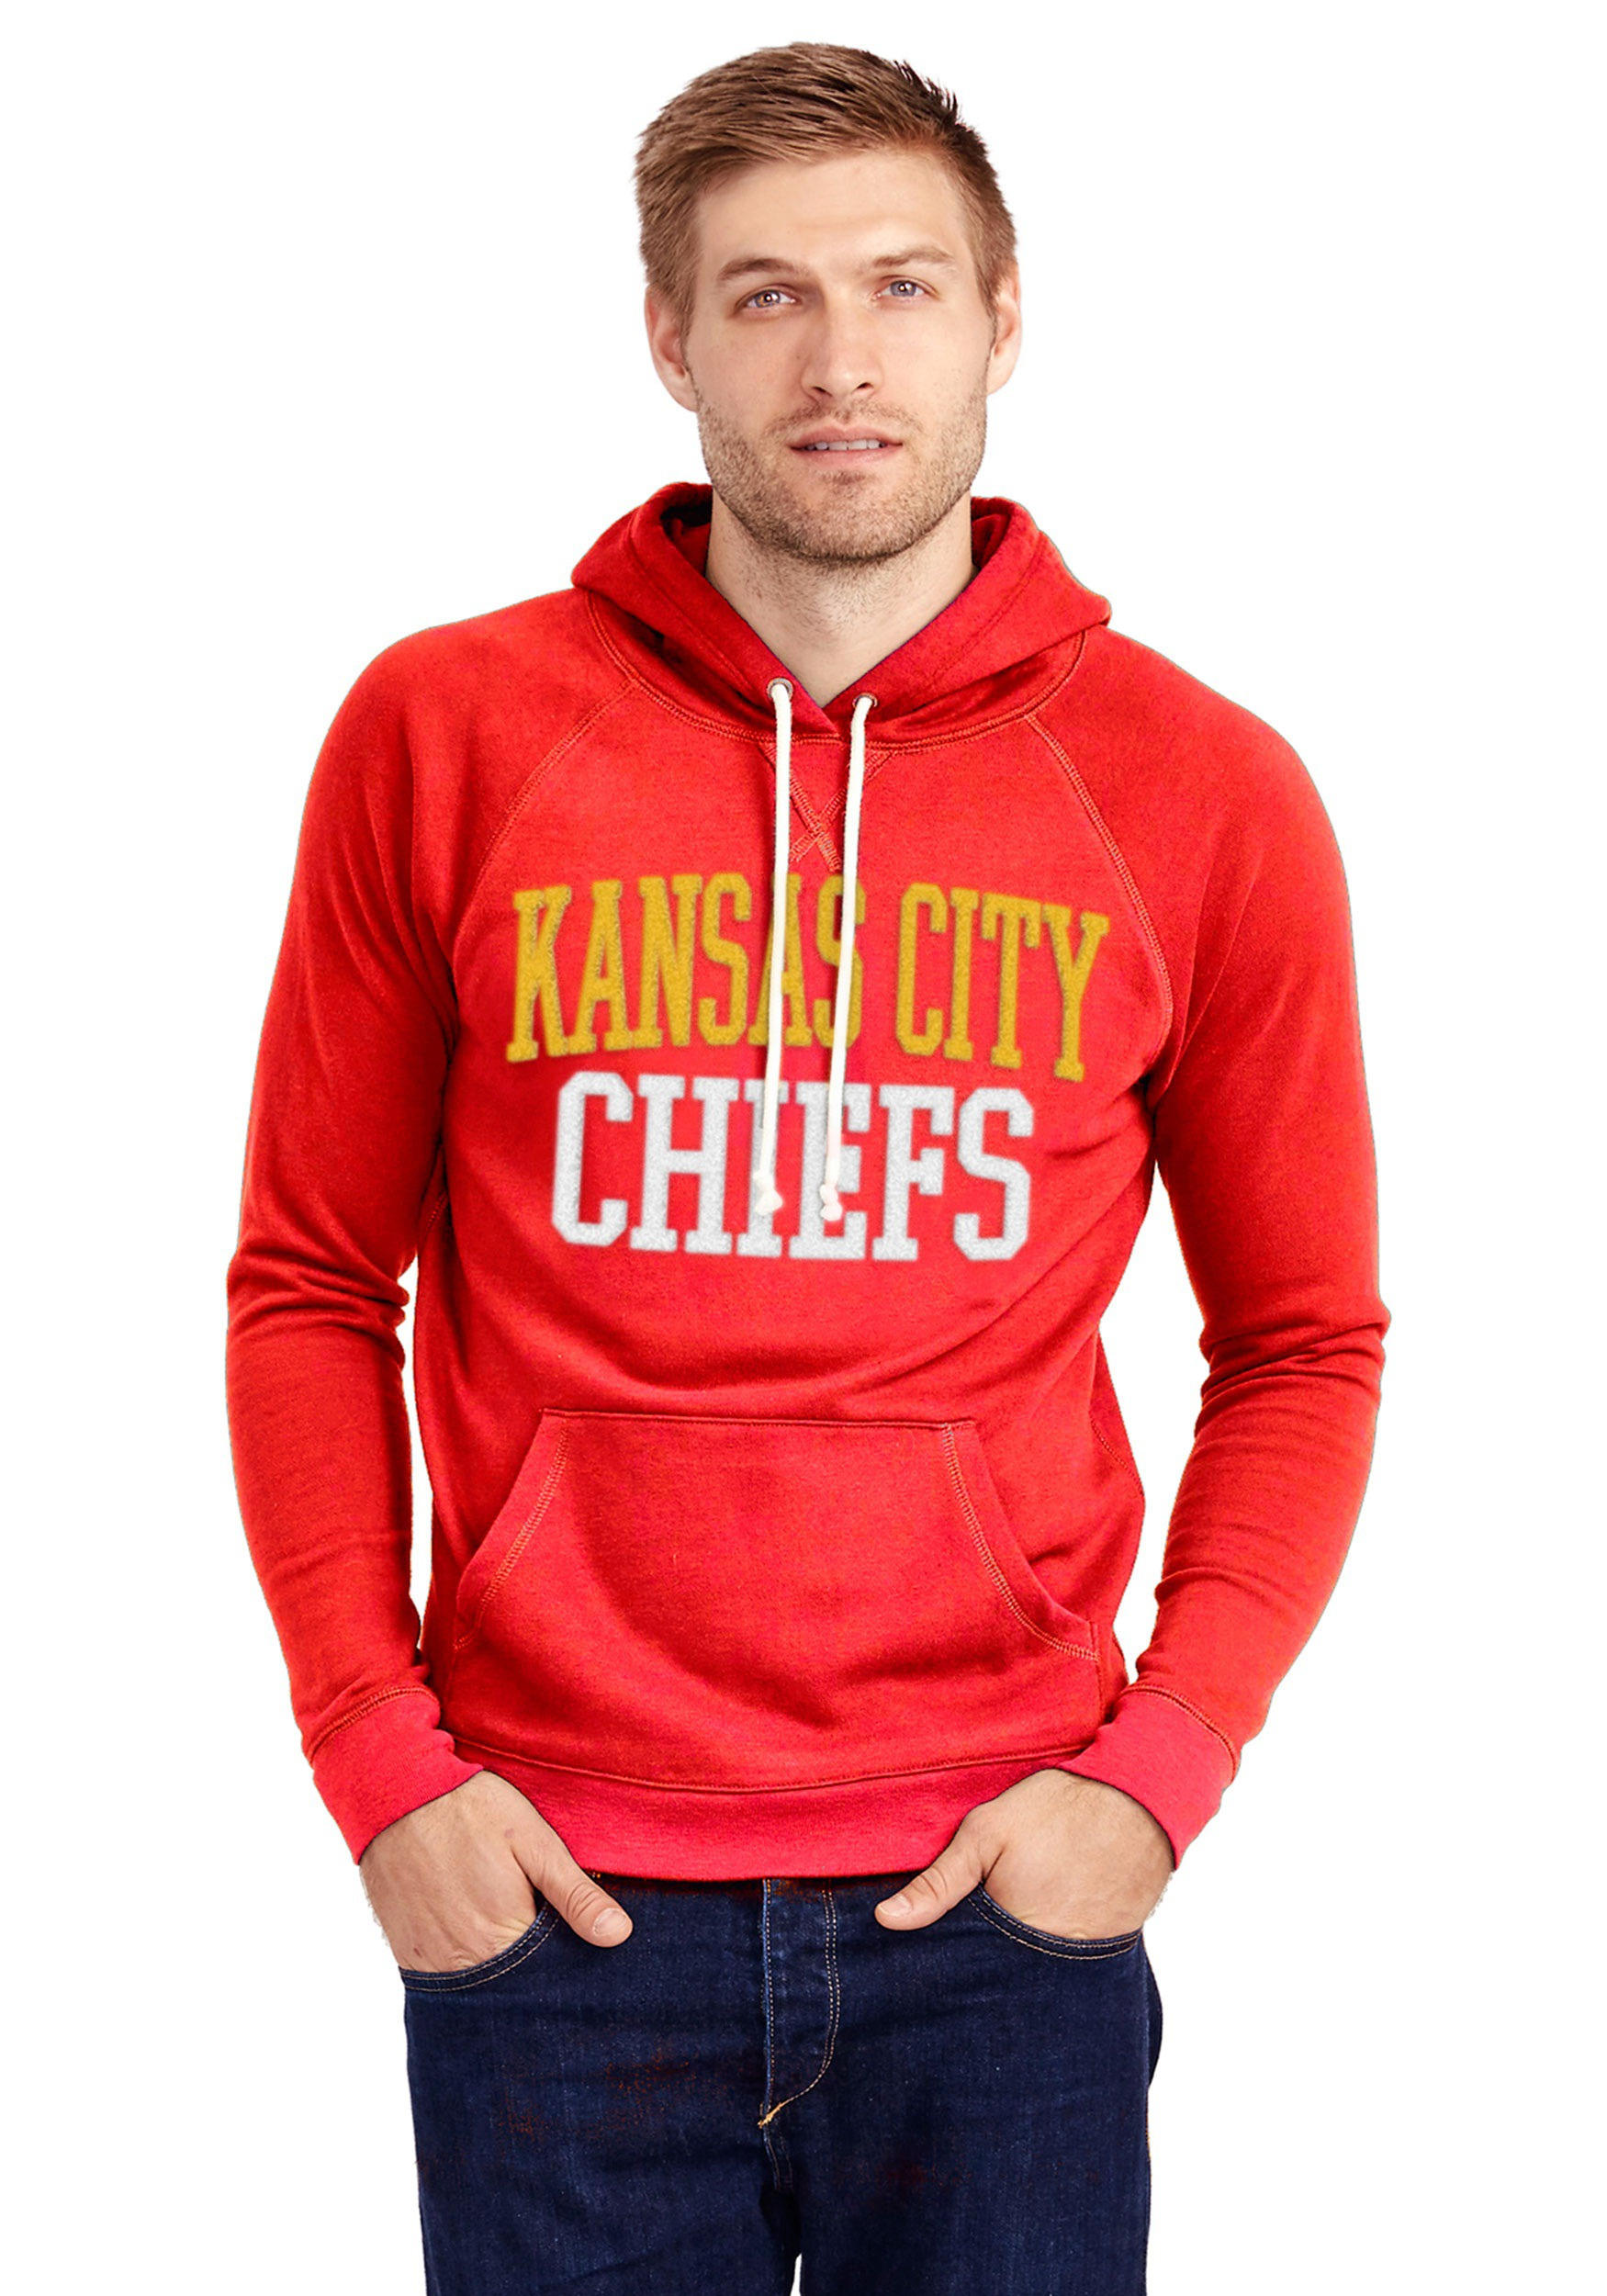 Kansas City Chiefs Half Time Hoodie for Men 4f91571a9f2b